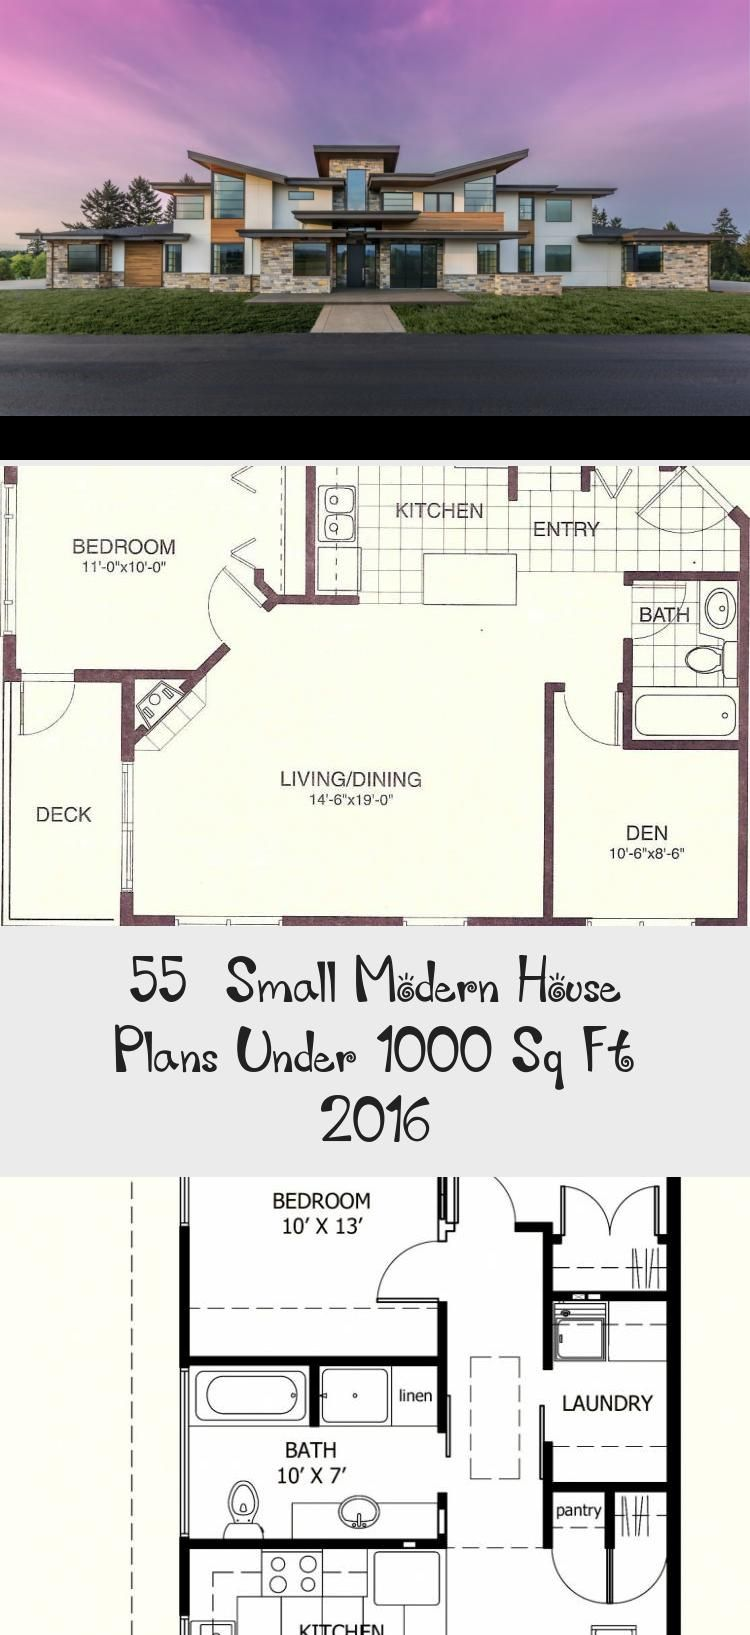 50 Small Modern House Plans Under 1000 Sq Ft 2019 Modernhousesketchdesign Modernhousesketchart Small Modern House Plans Modern House Plans Small Modern Home